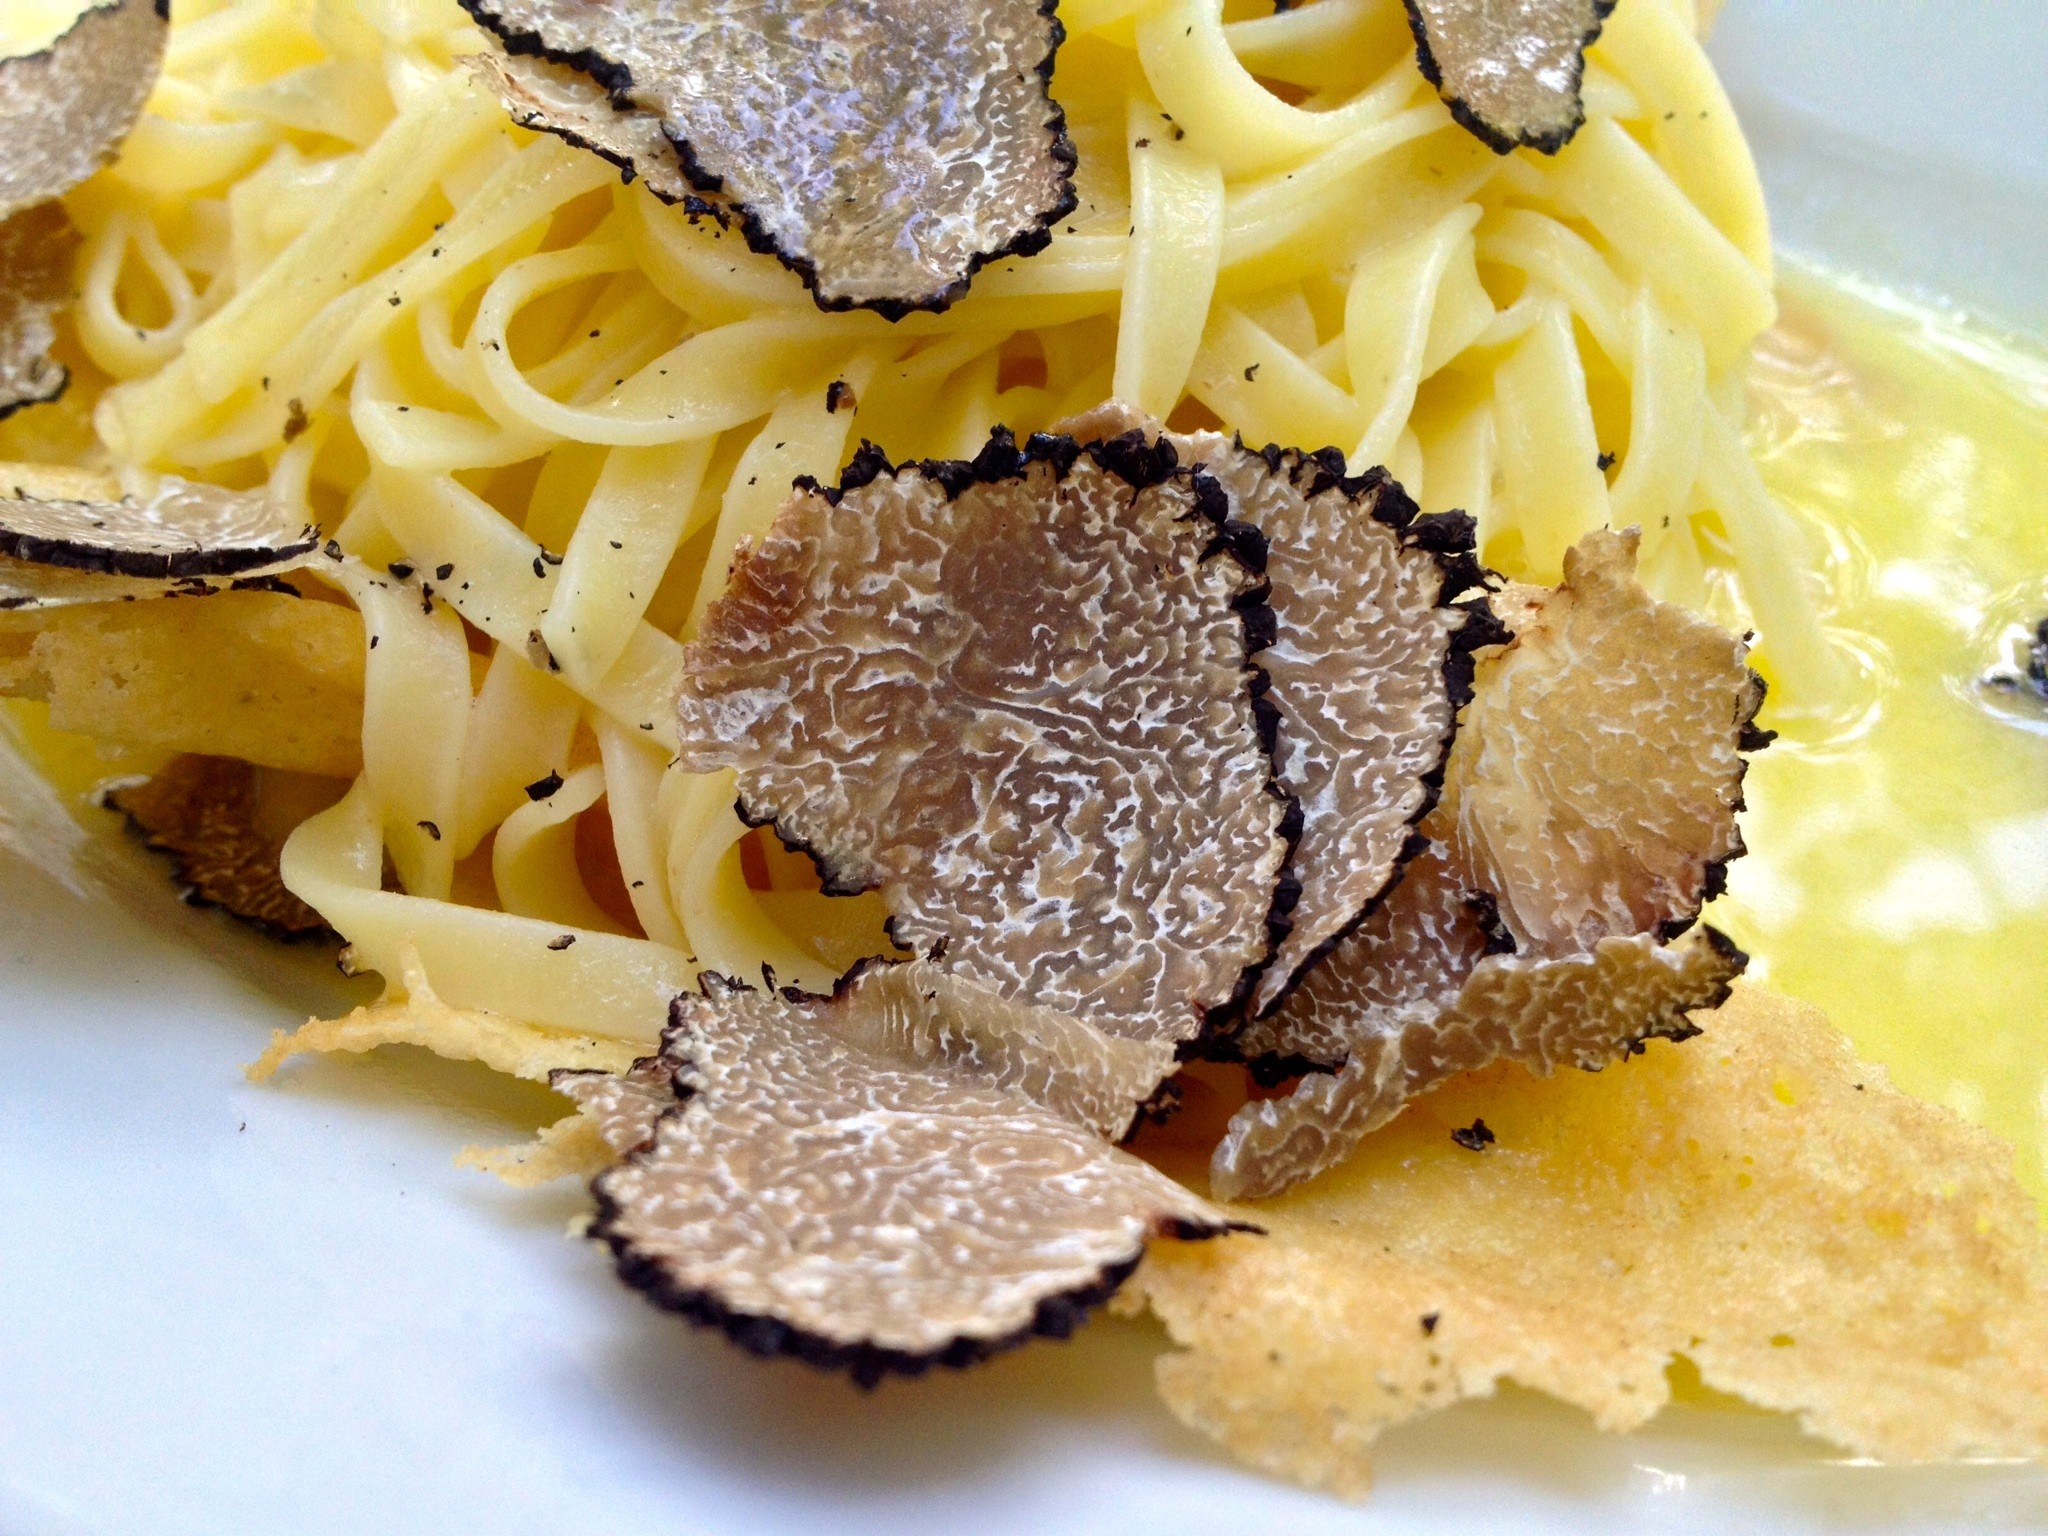 Close-up of the Tagliolini with shaved black truffle and parmesan crisp